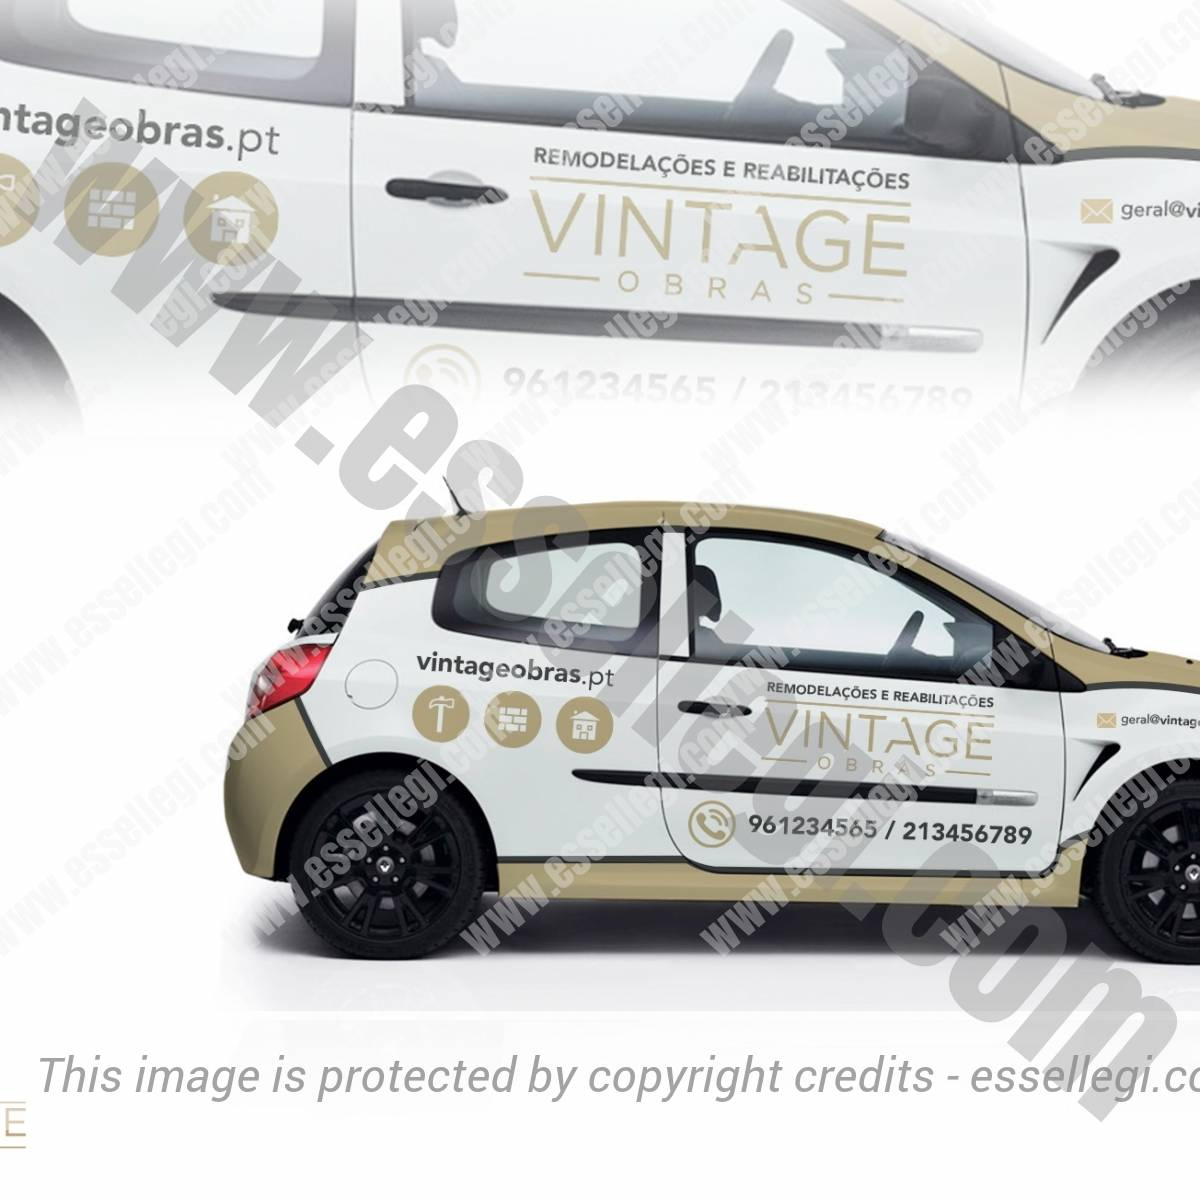 VINTAGE OBRAS | CAR WRAP DESIGN 🇵🇹